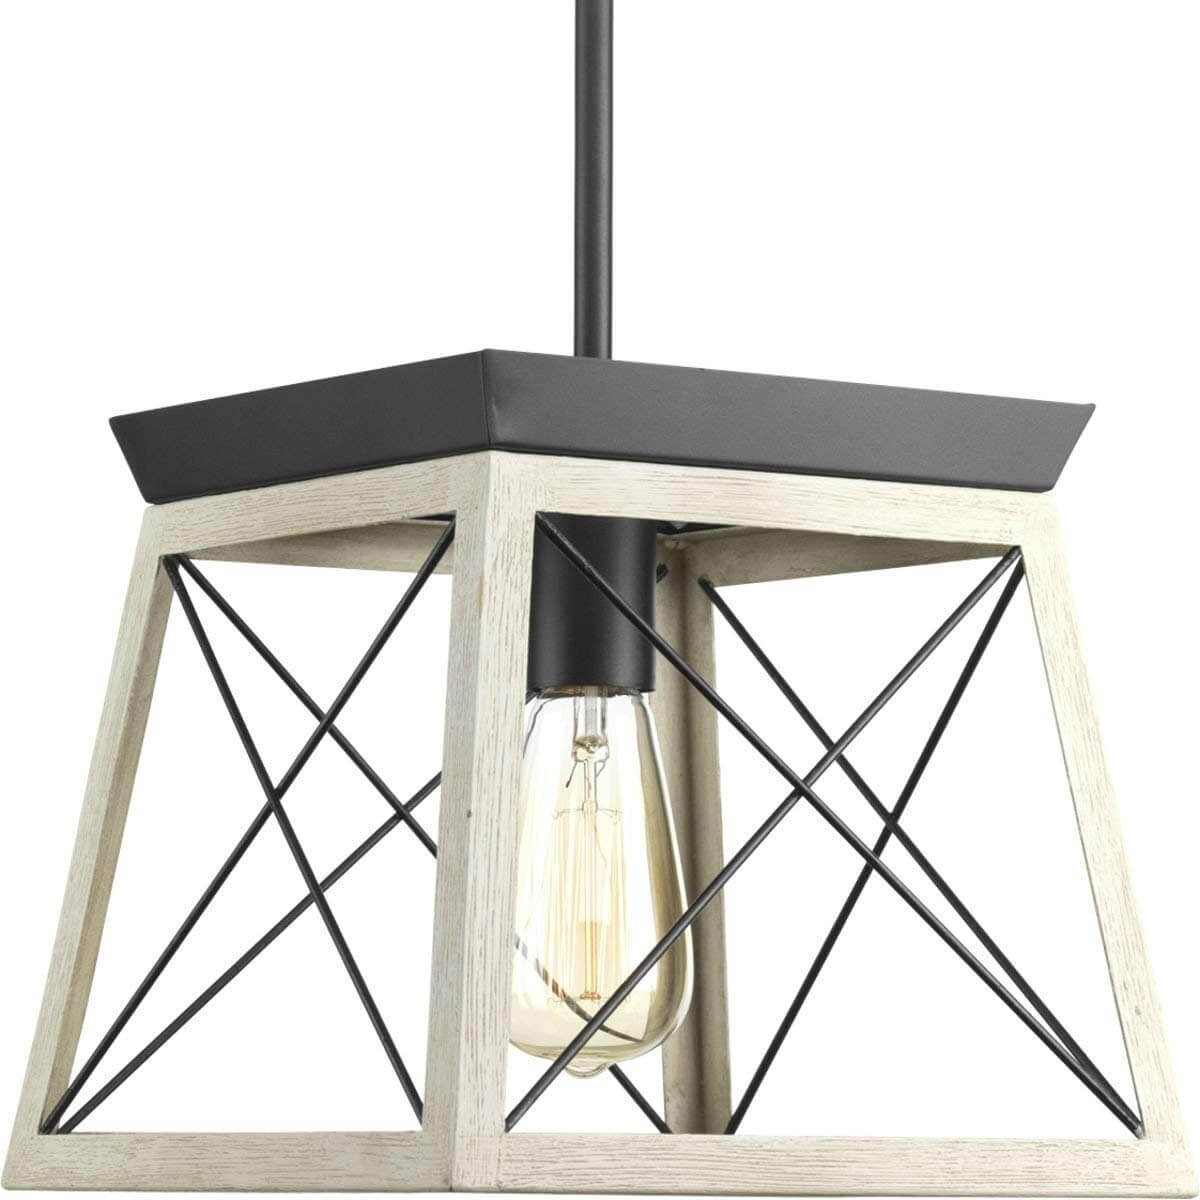 Pendant Lighting 30 Rustic Modern And Farmhouse Options Insteading